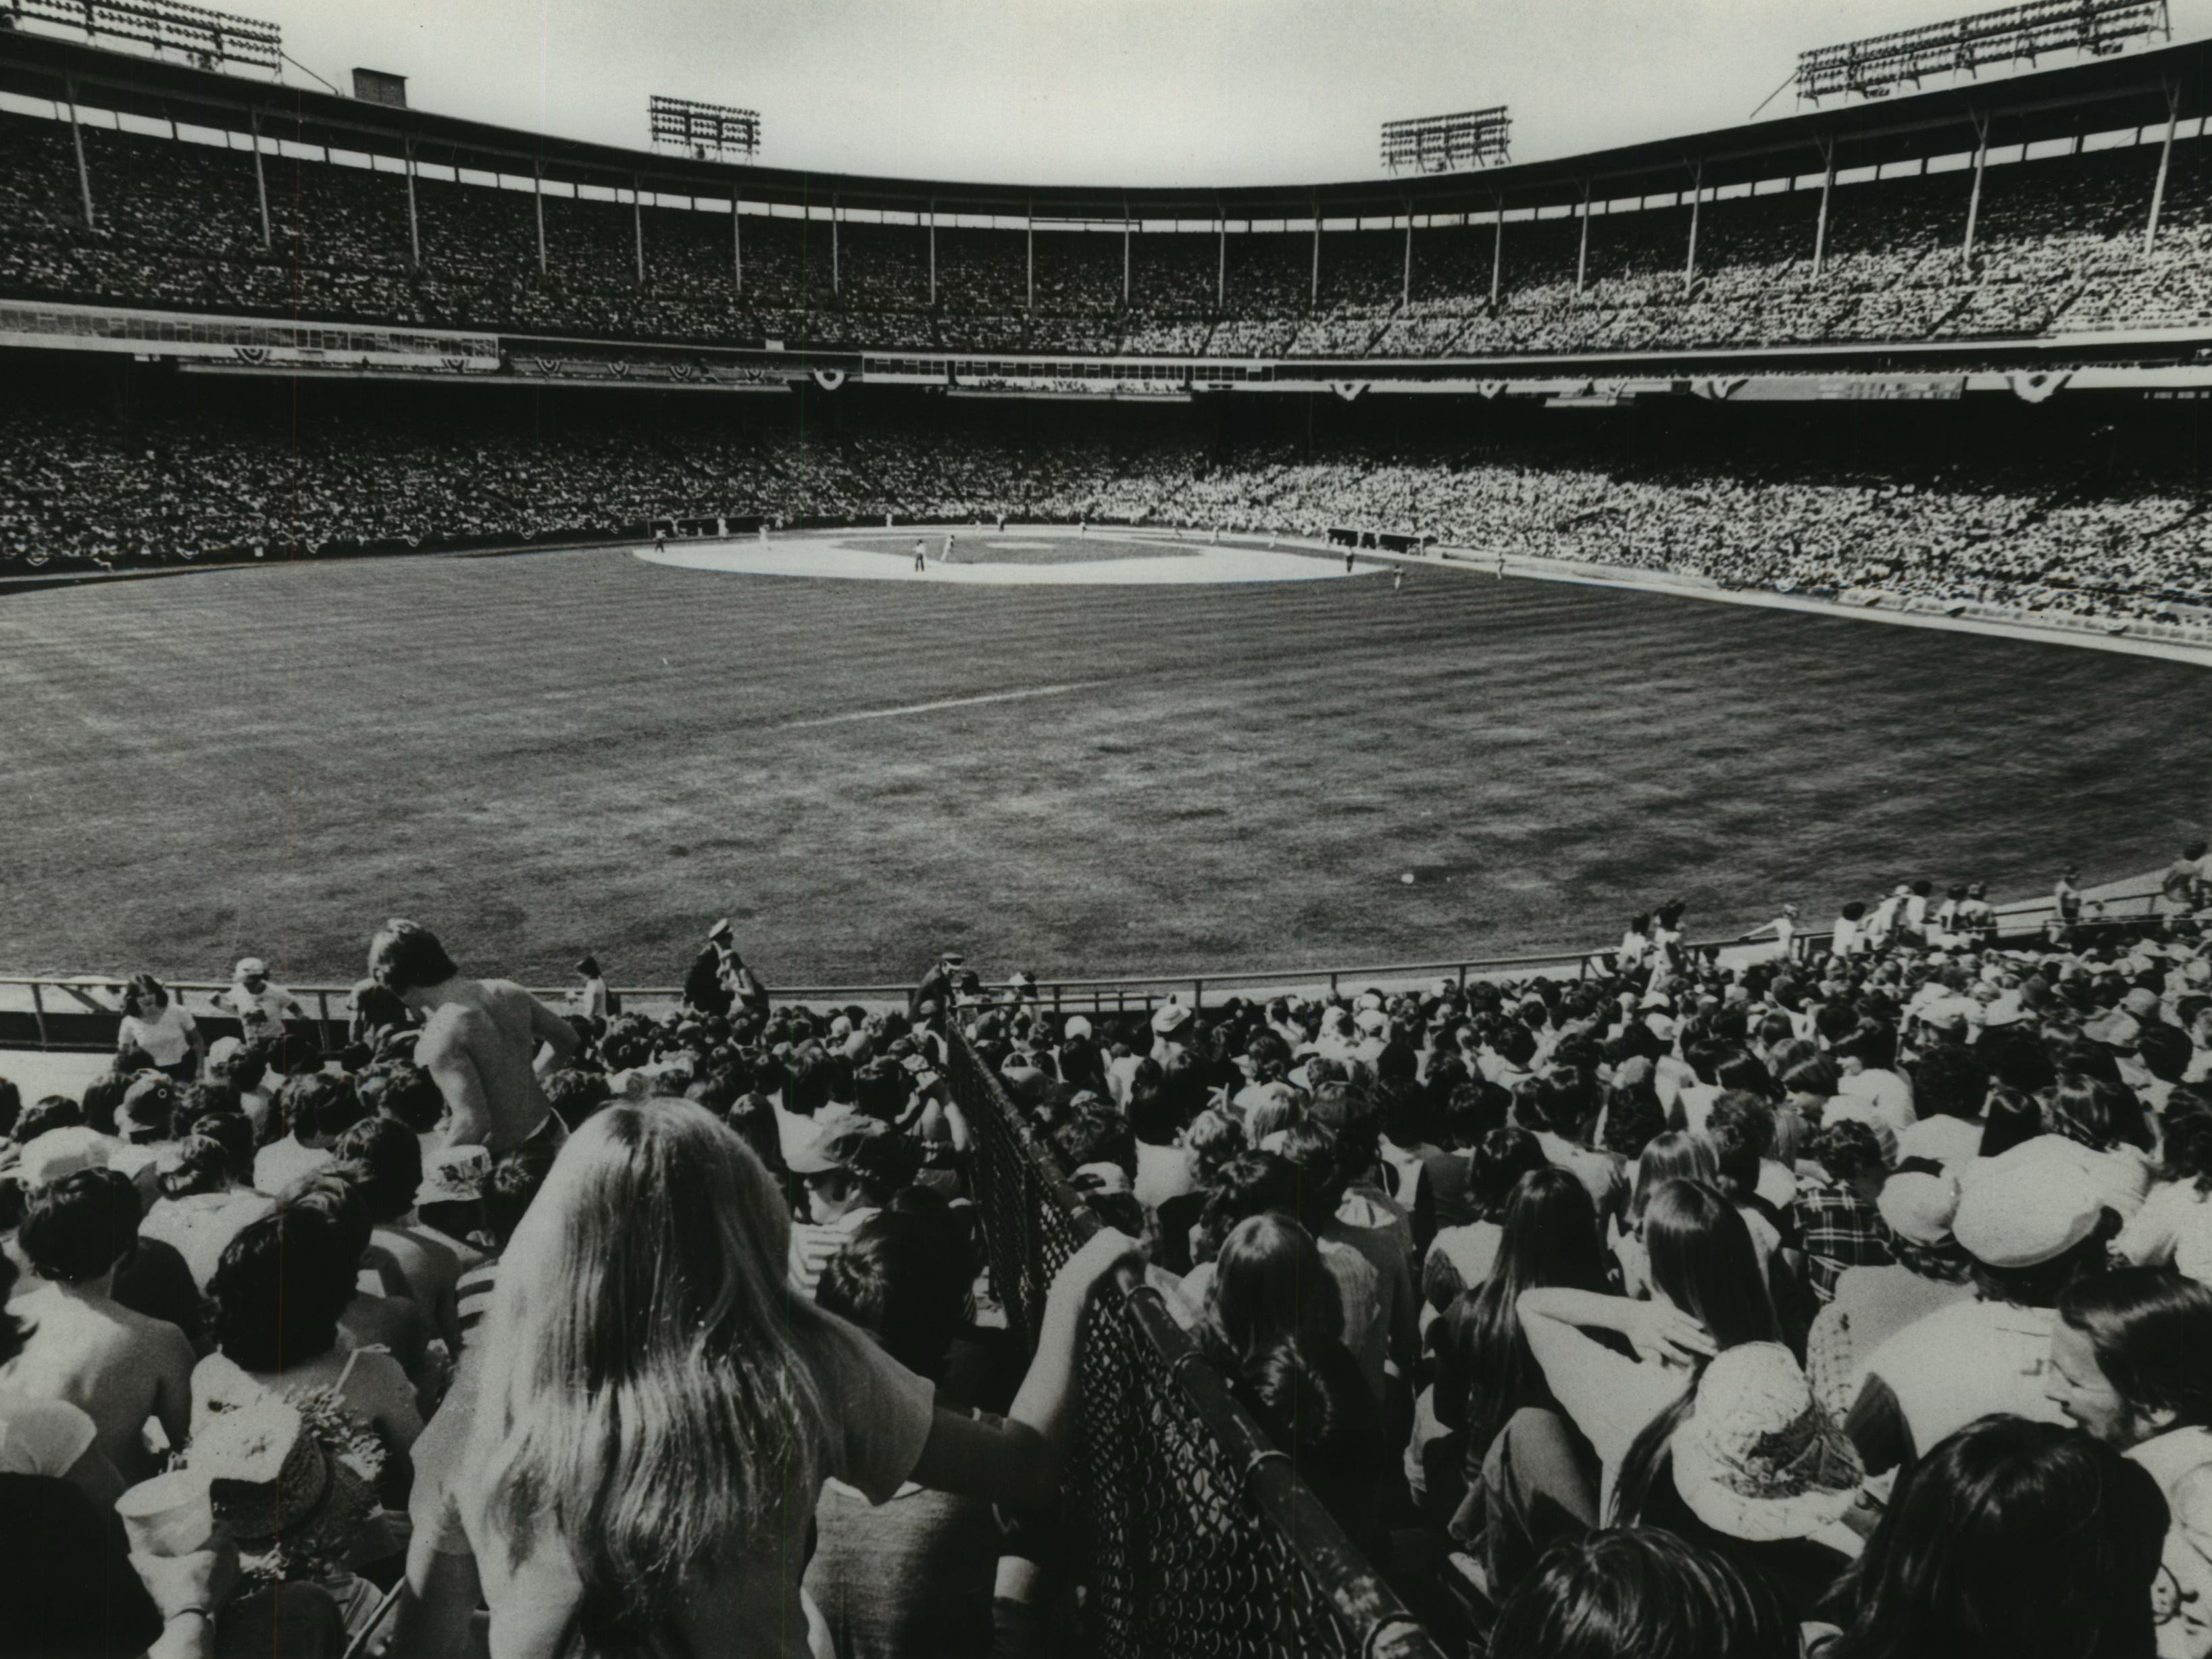 The Milwaukee Brewers' biggest crowd of the season, 55,120, watch the team lose the home opener to the Baltimore Orioles, 1-0, on April 12, 1977. This photo was published in the Dec. 20, 1979, Milwaukee Journal.